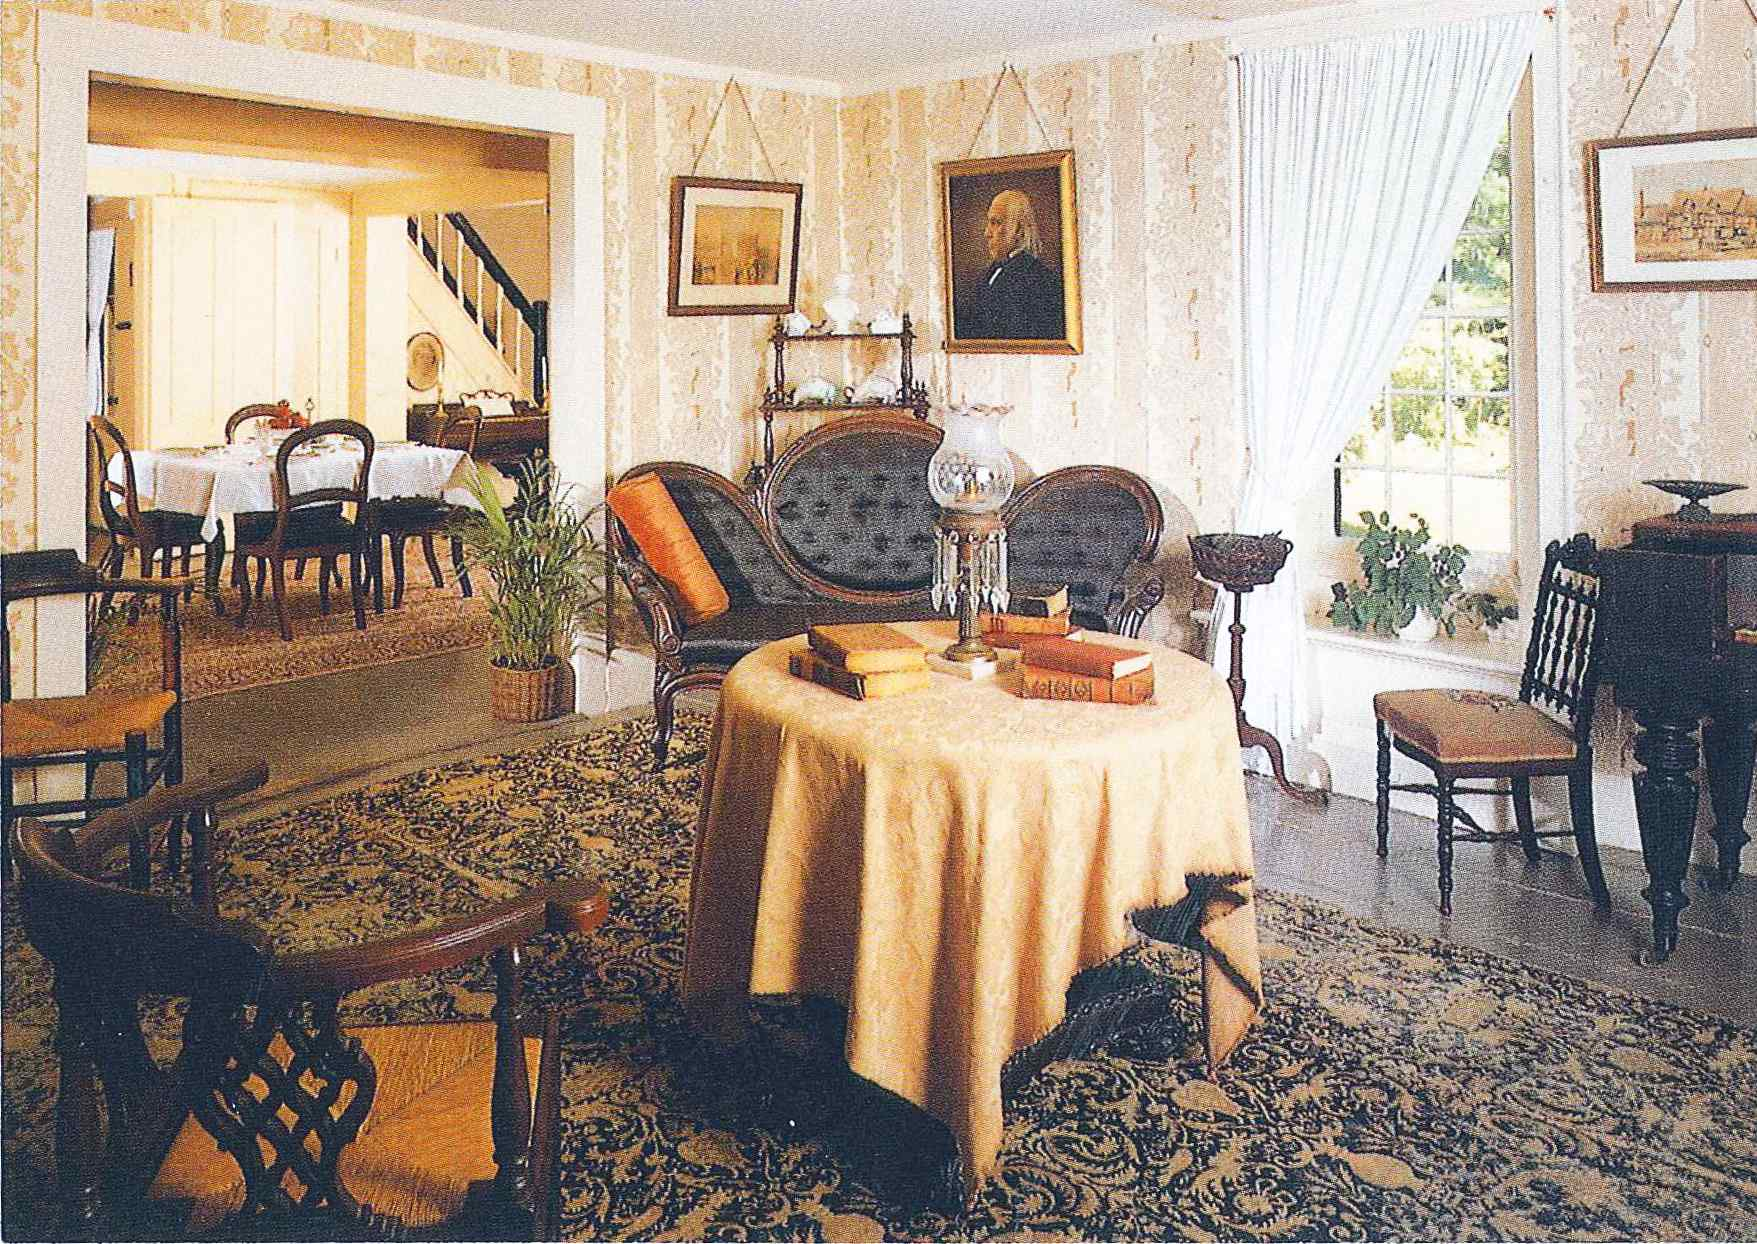 The parlor includes many original furnishings